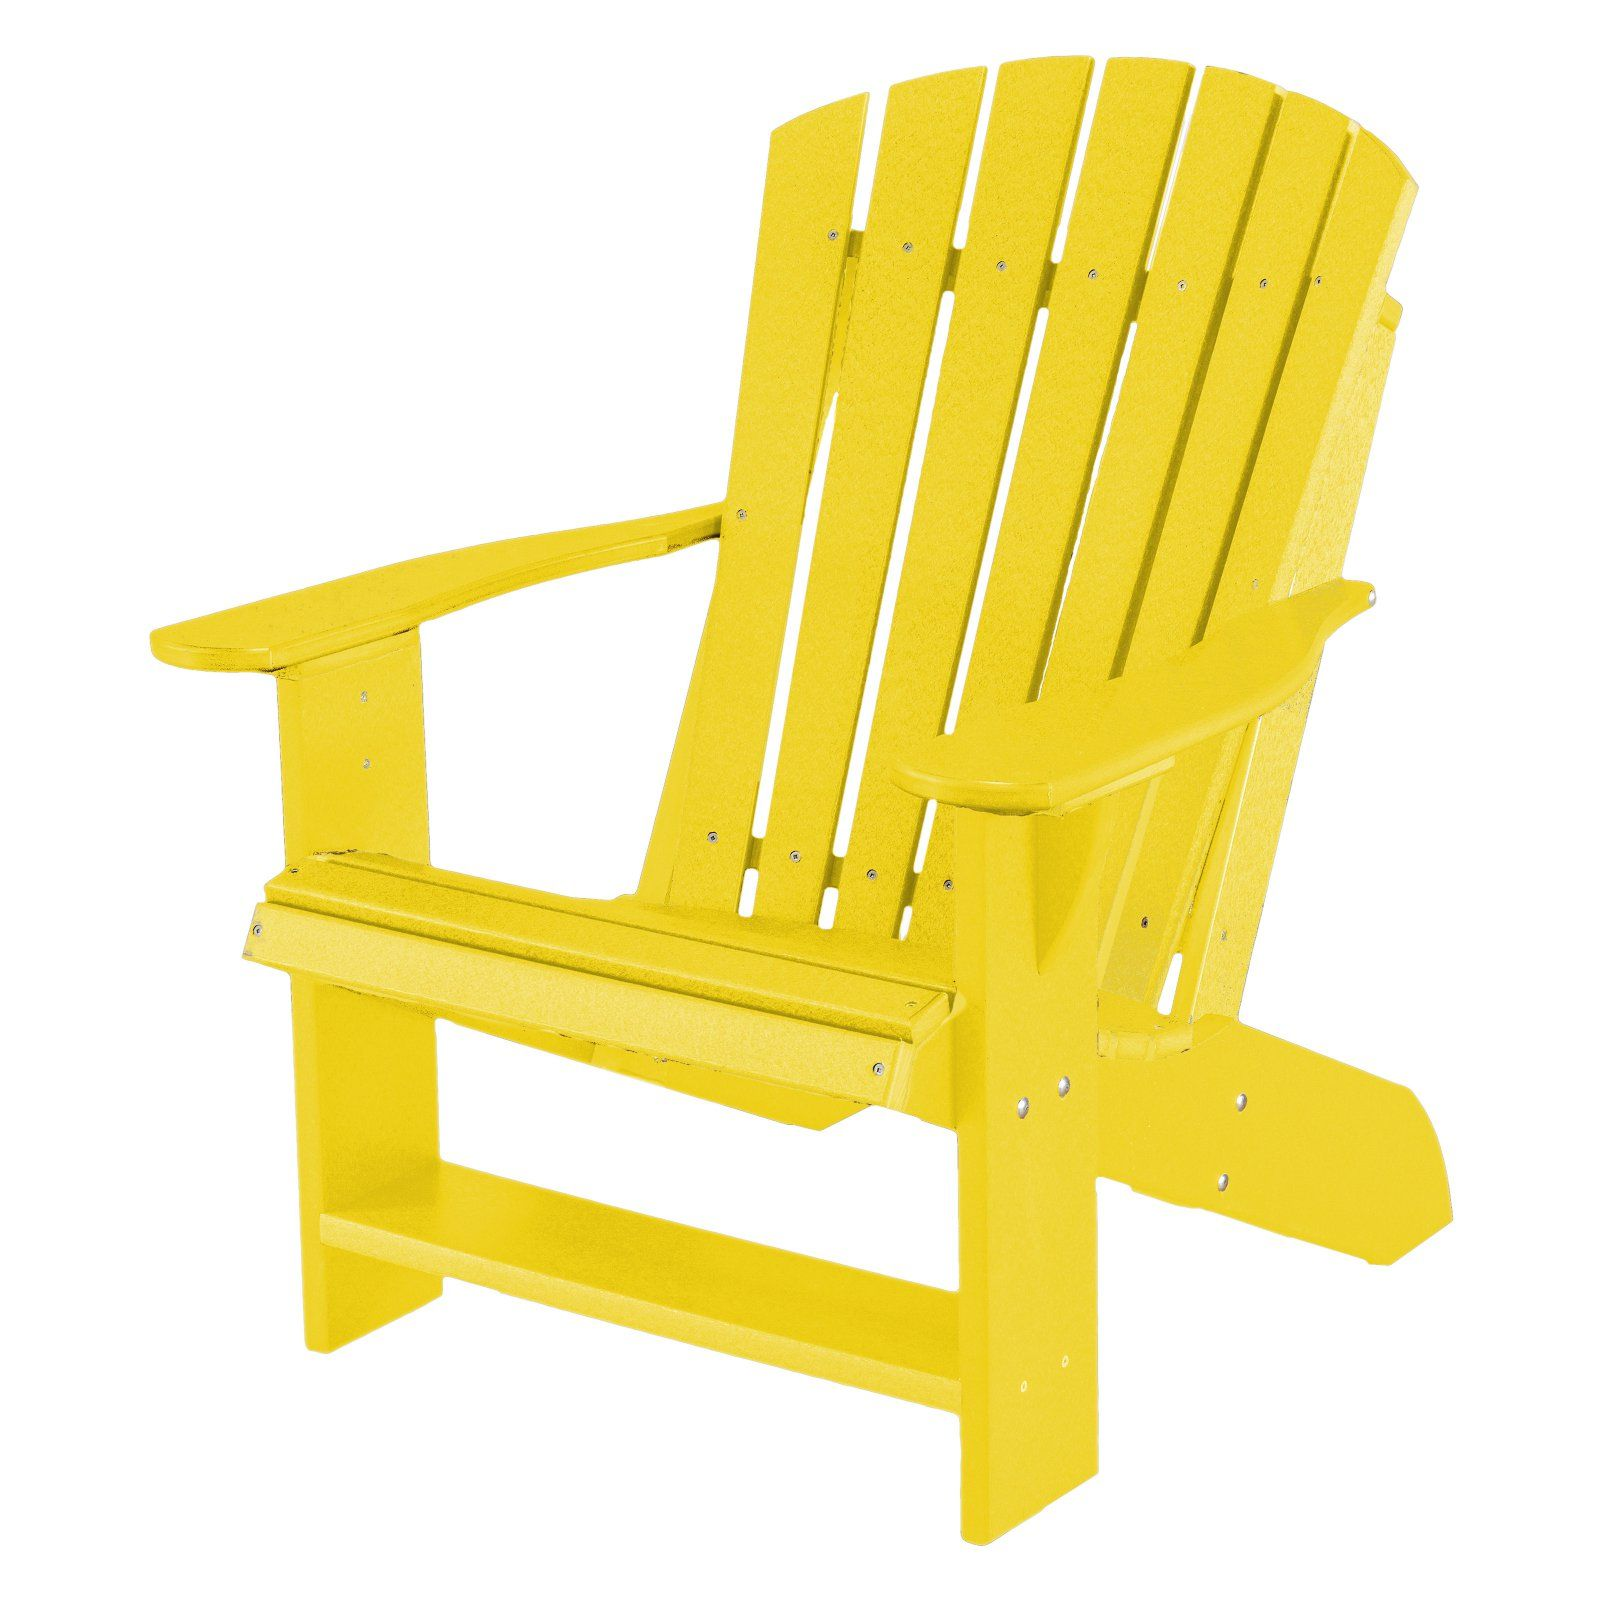 Enjoyable Outdoor Wildridge Heritage Adirondack Chair In 2019 Andrewgaddart Wooden Chair Designs For Living Room Andrewgaddartcom